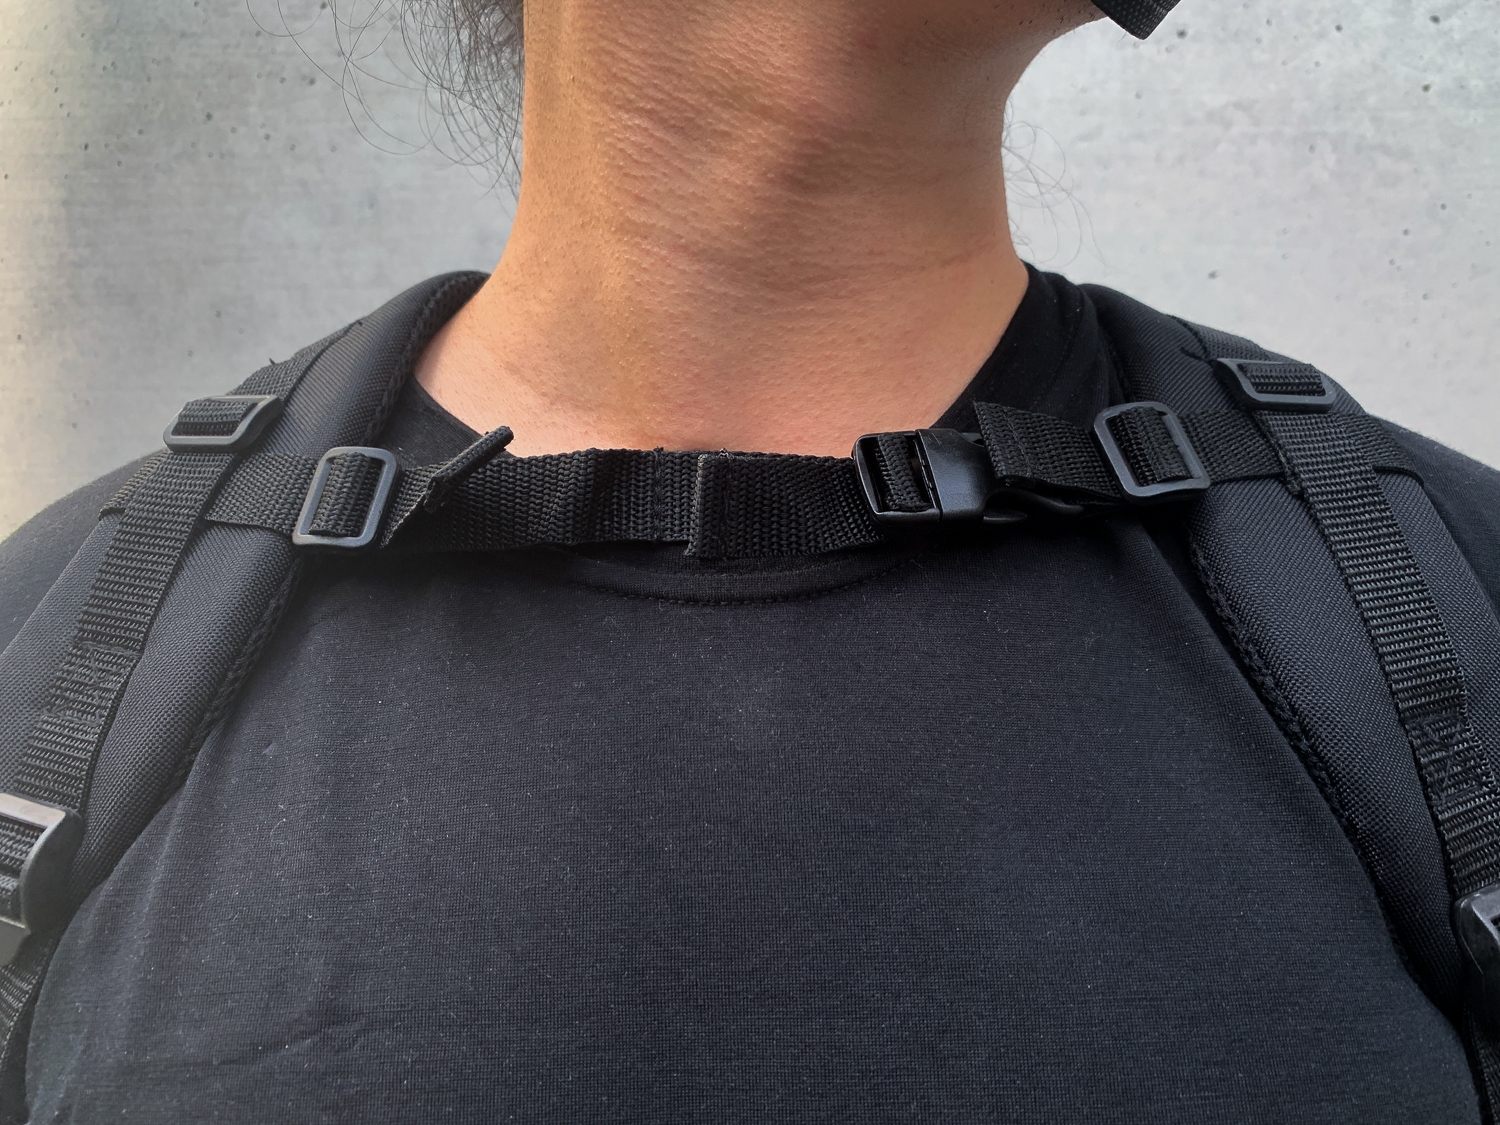 If you wear the straps too loose, the sternum strap comes up to your neck, which is typical for military backpacks which are designed for stability with heavy loads.